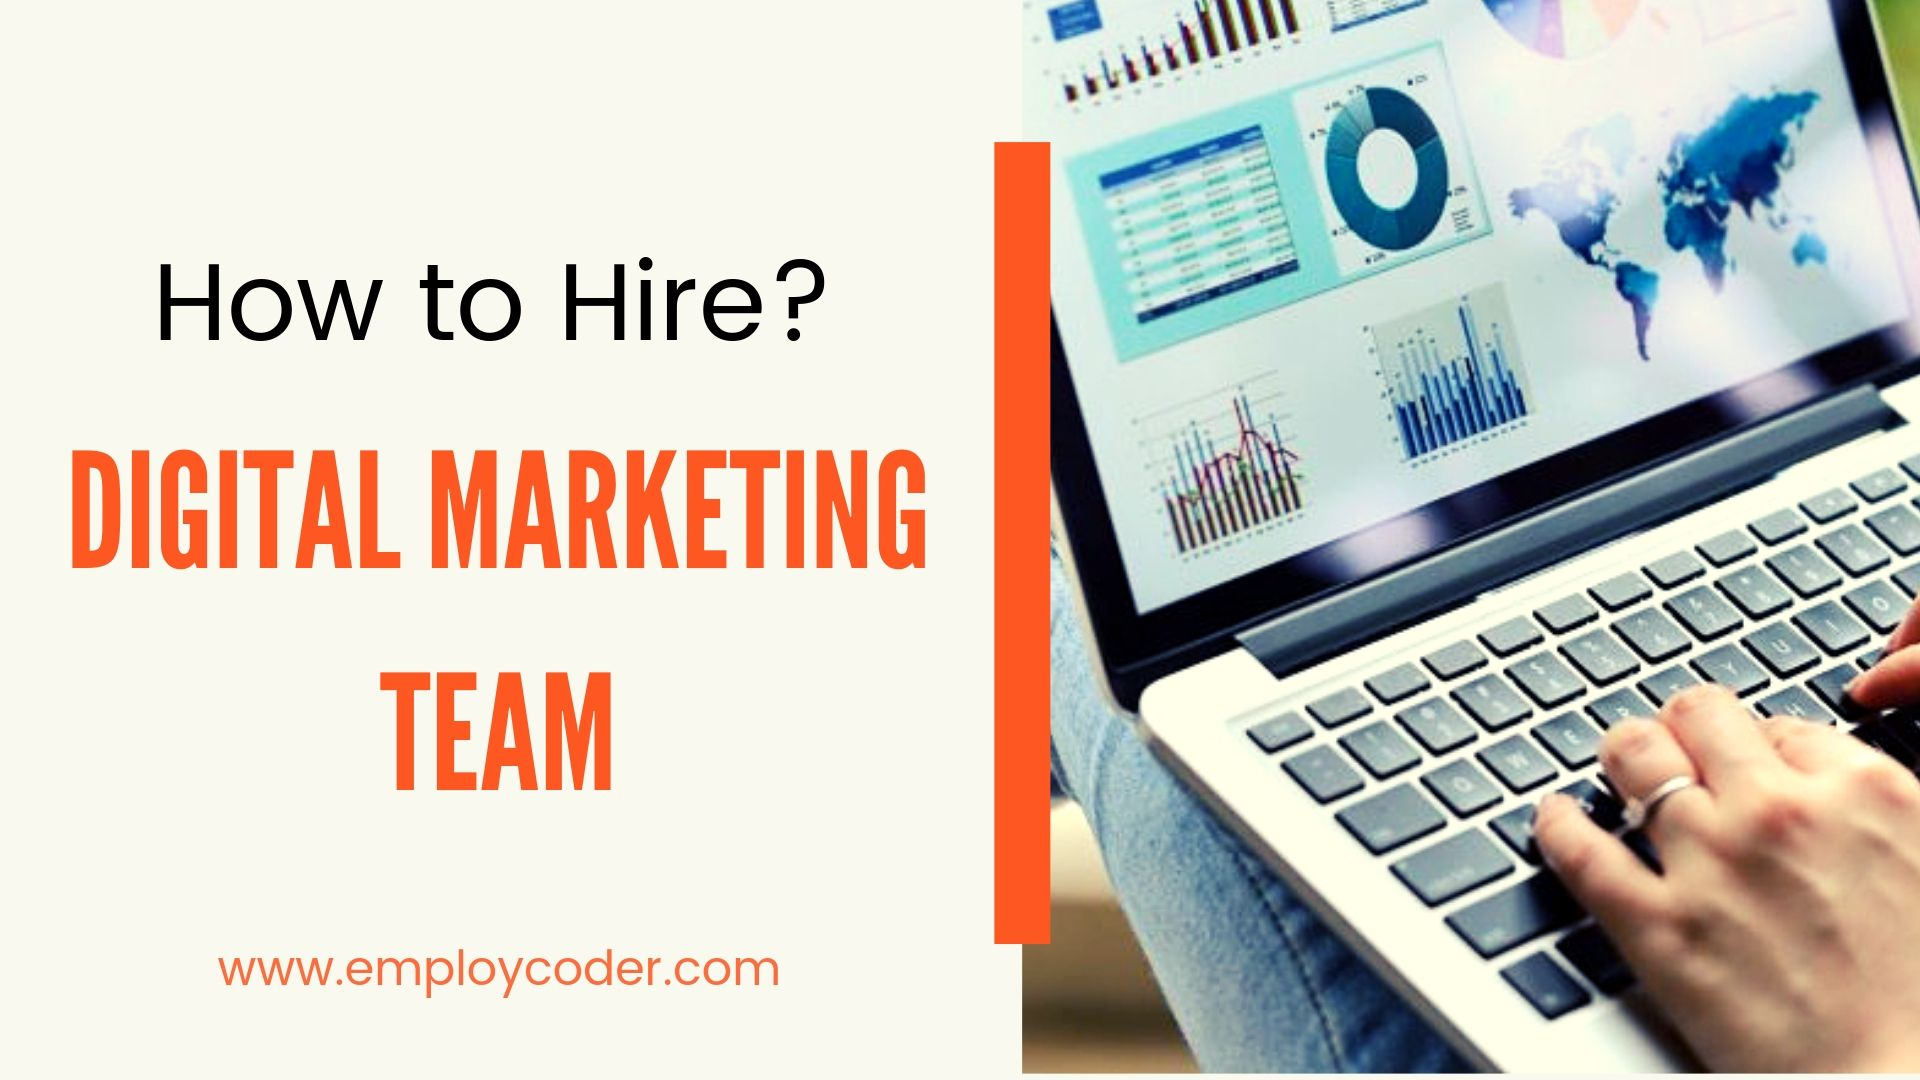 How to Hire Dedicated Digital Marketing Team?